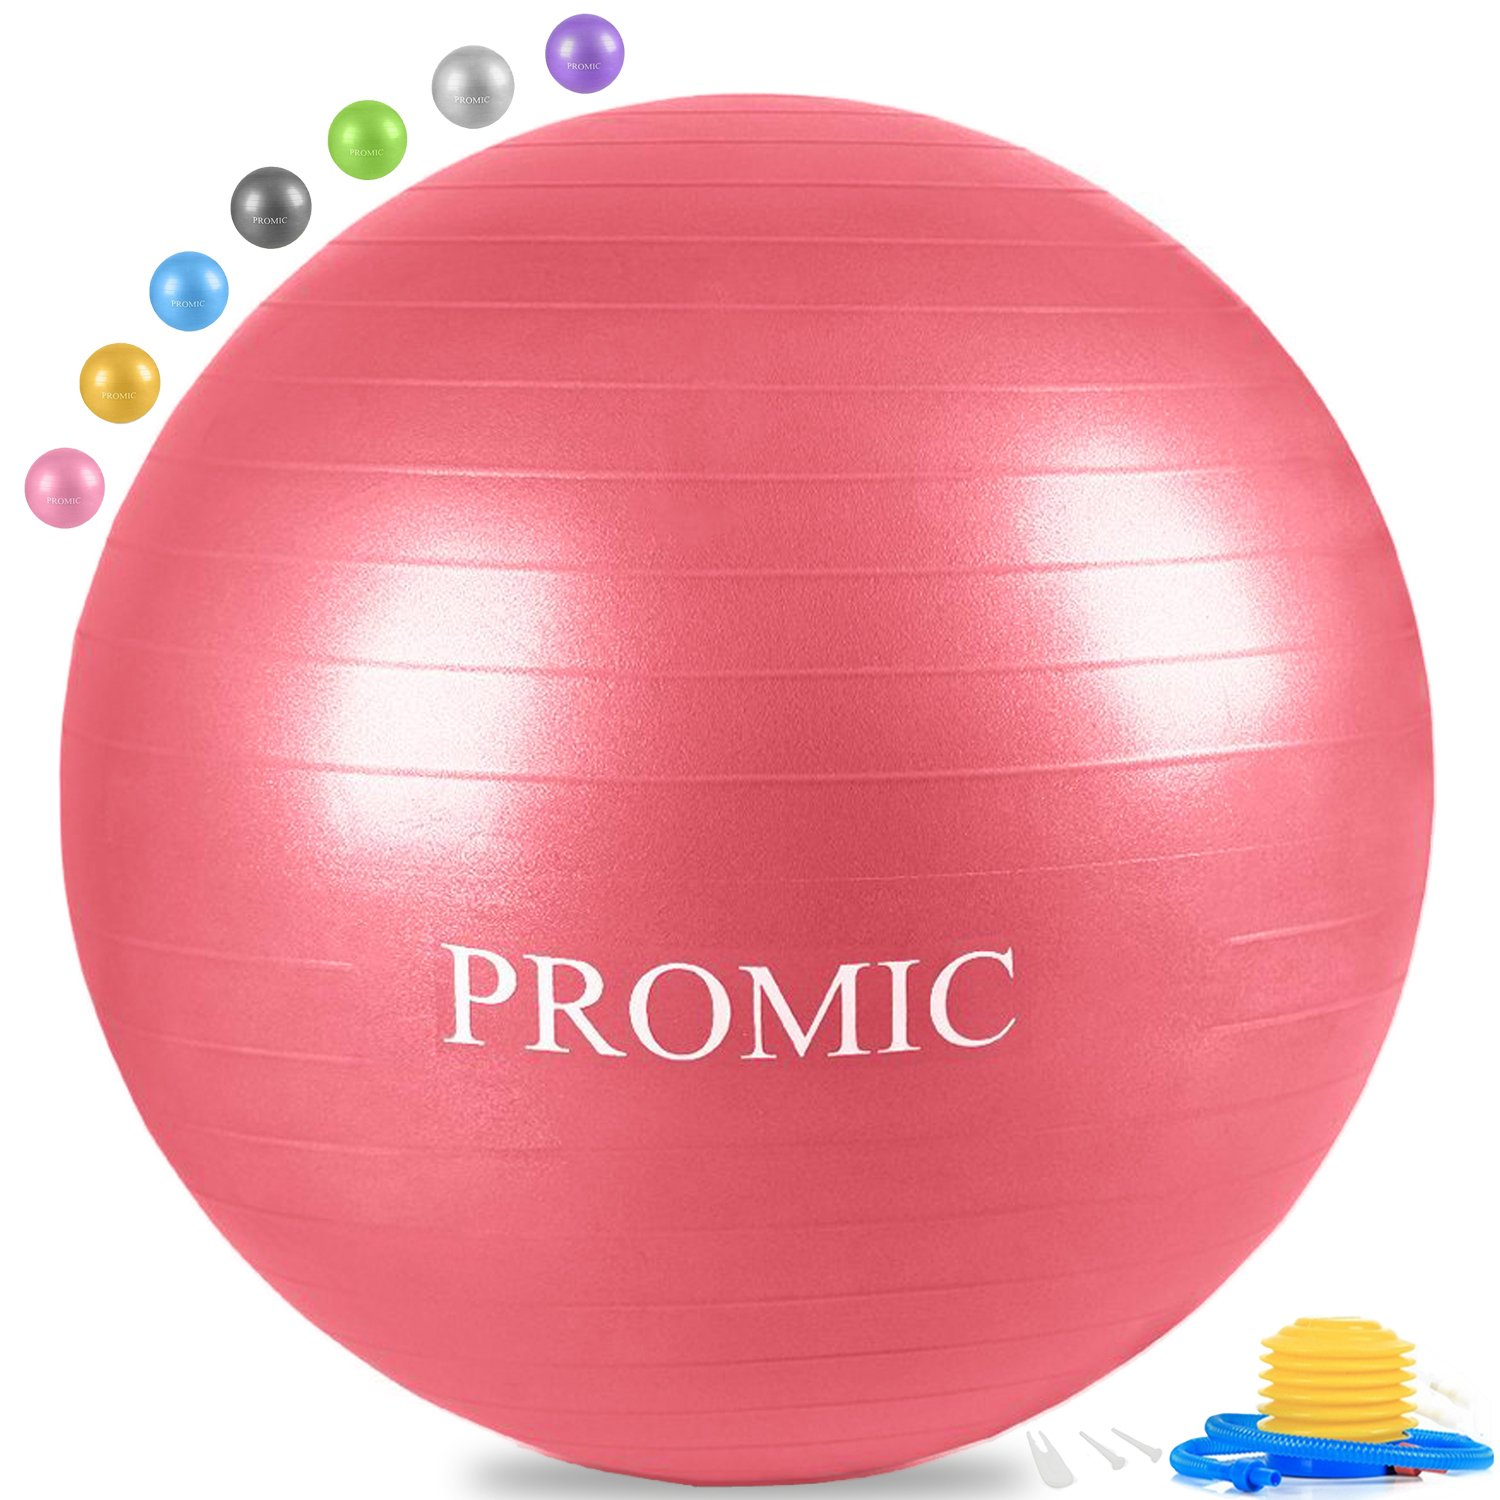 PROMIC Professional Grade Static Strength Exercise Stability Balance Ball with Foot Pump,85cm,Red